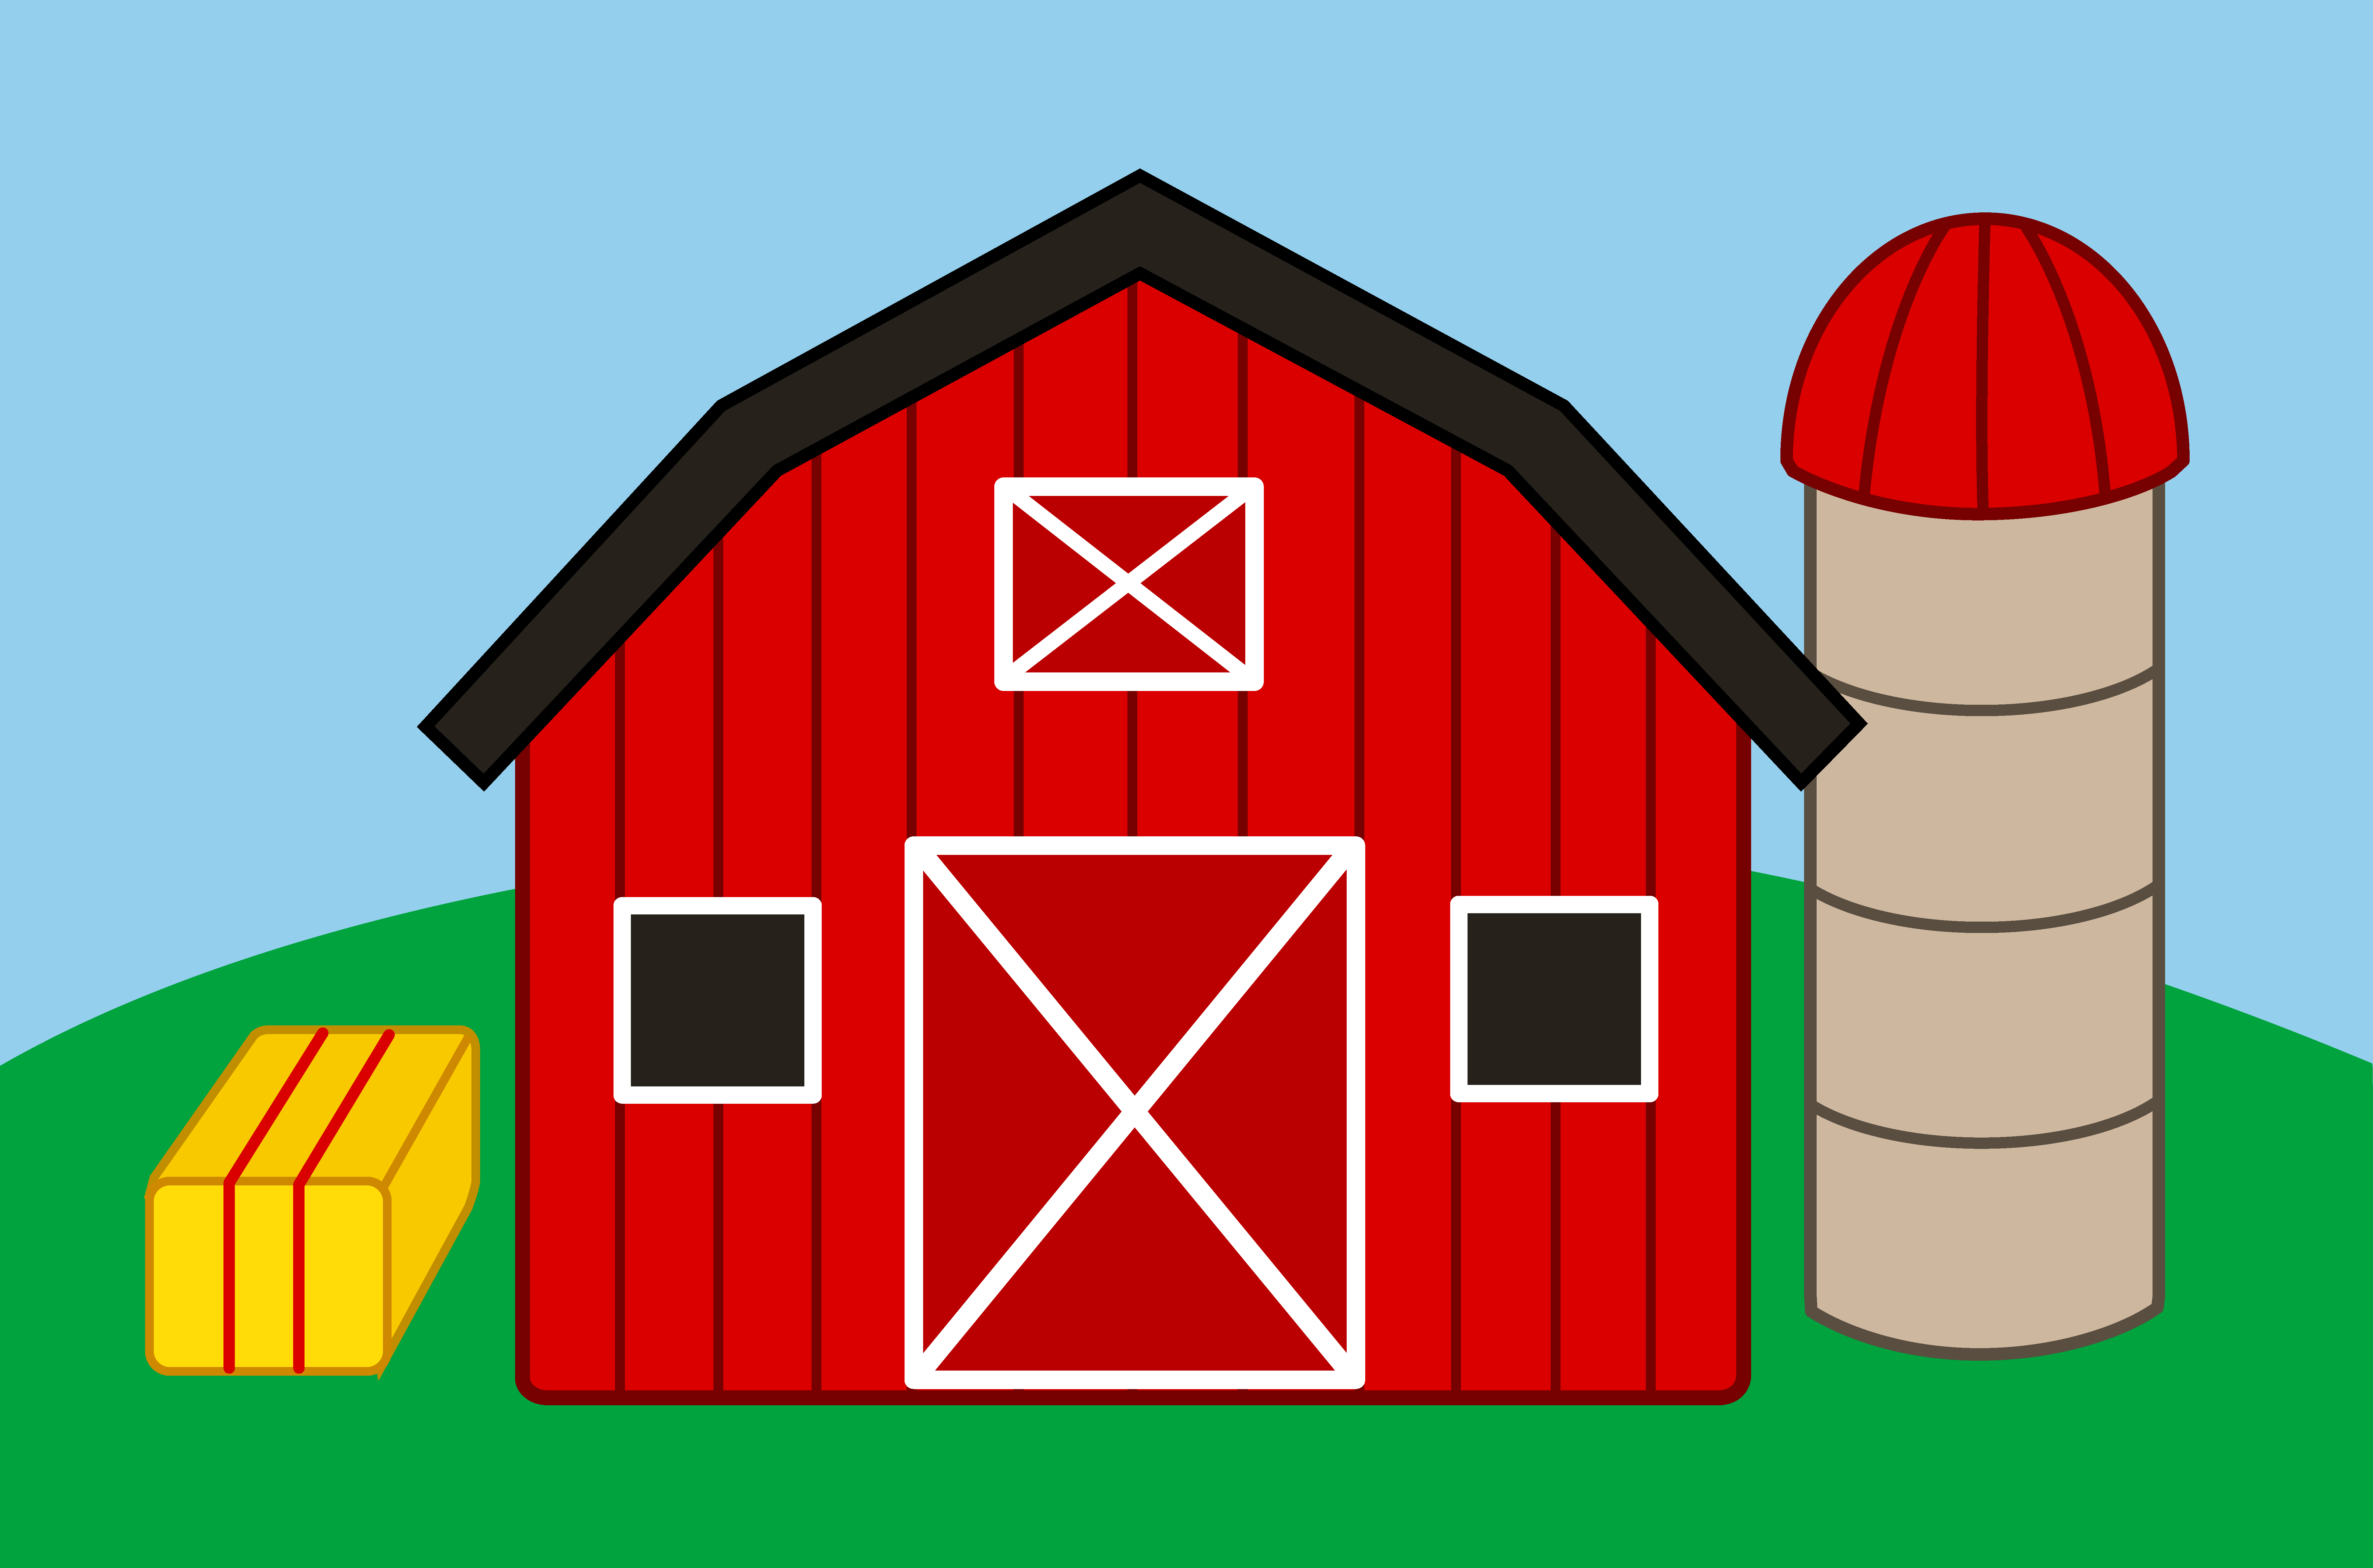 Setting clipart system Clipart pictures of of barn